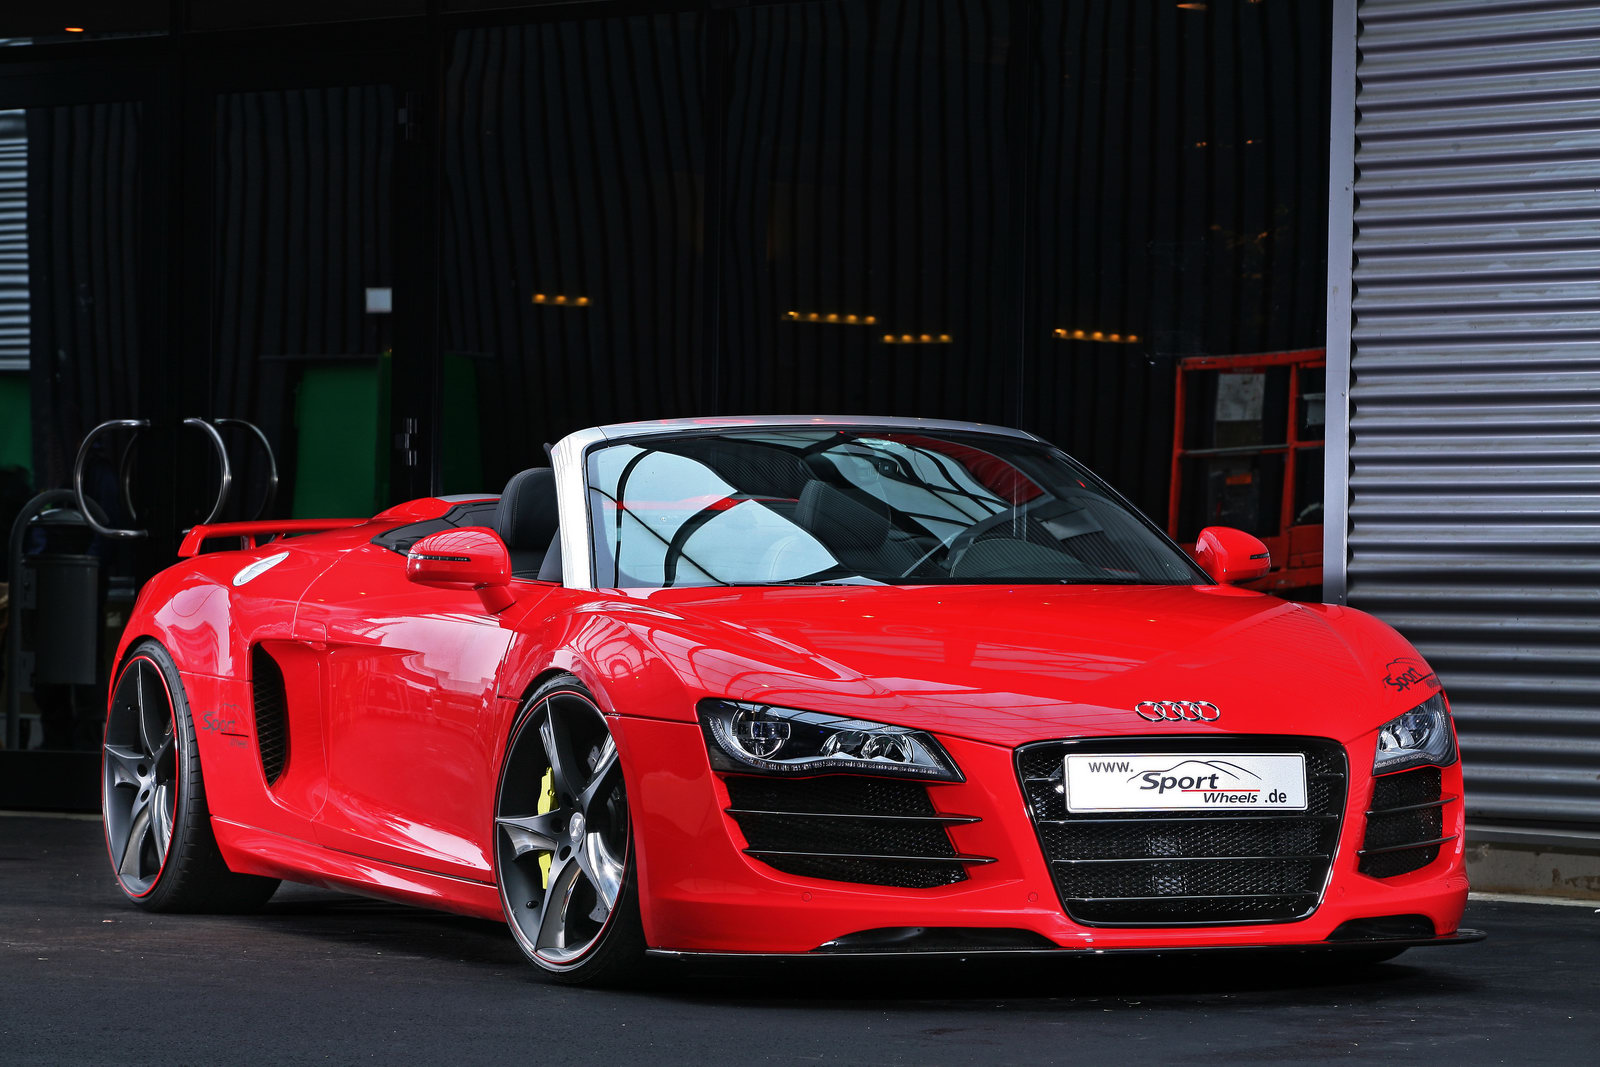 Dominix Cars Audi R8 Spark 10 Spyder Custom By Sport Wheels